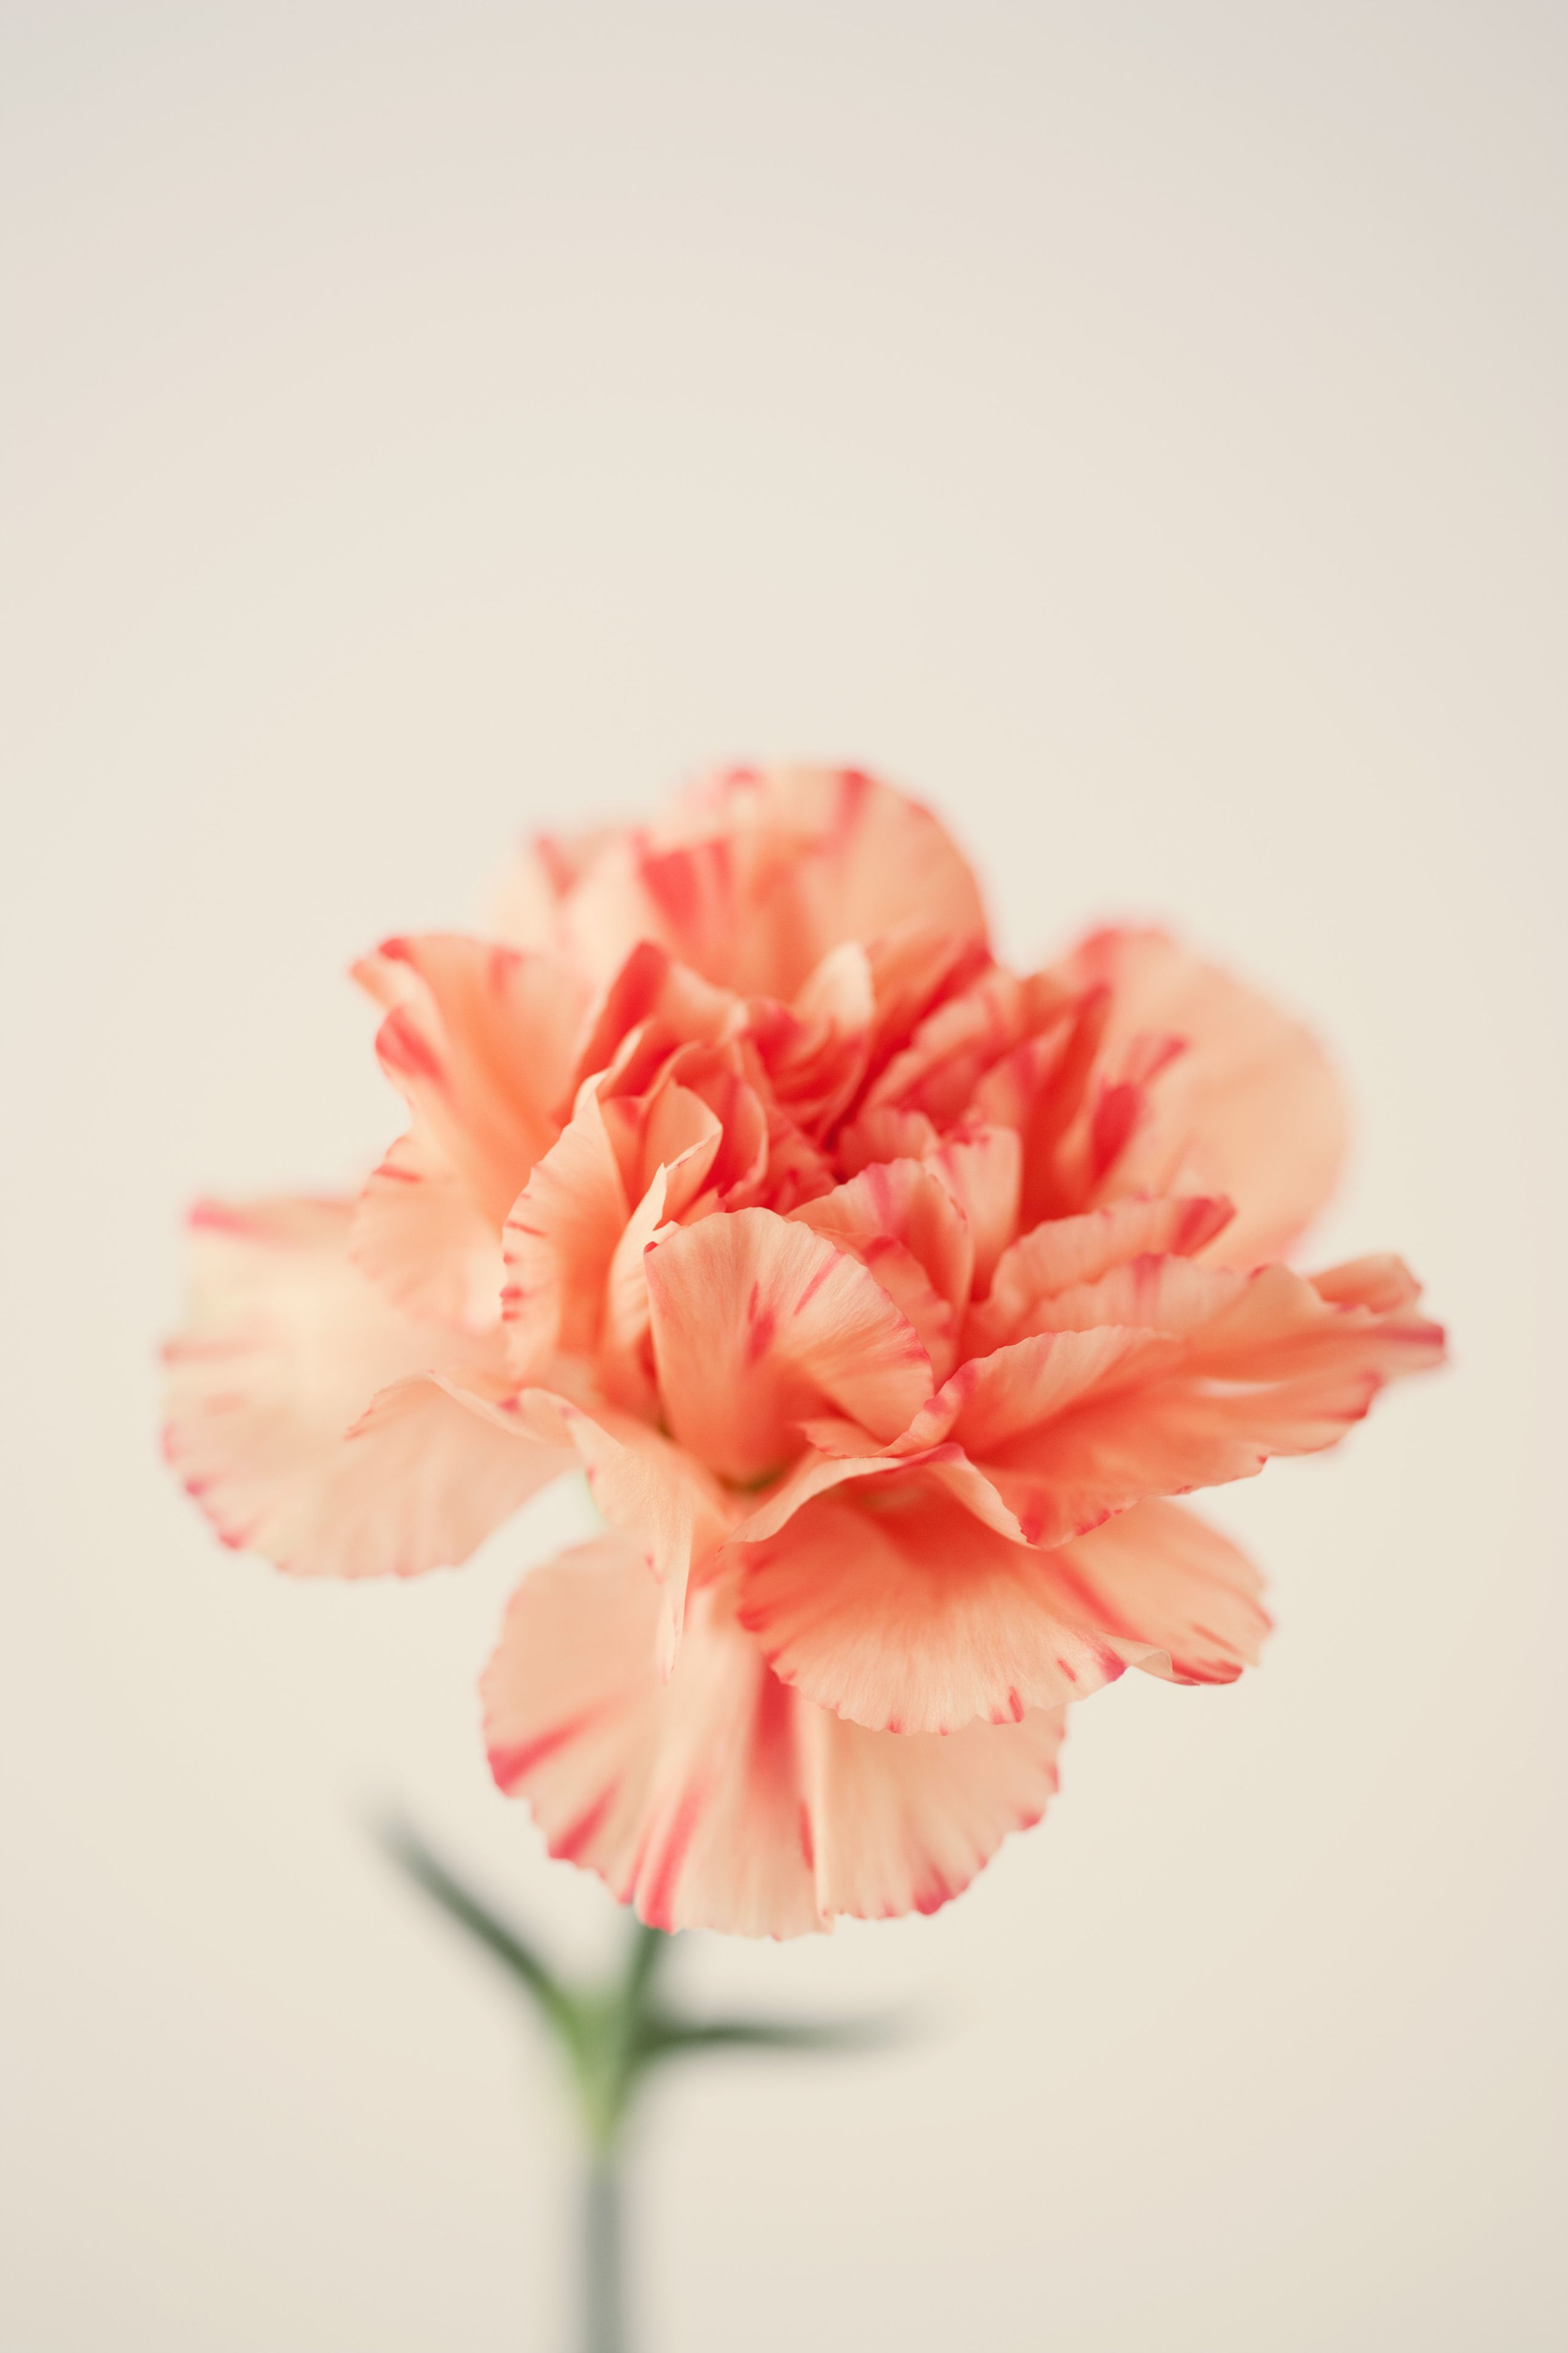 The Surprising Meanings Behind Your Favorite Flowers Carnation Flower Meaning Flowers Flower Meanings